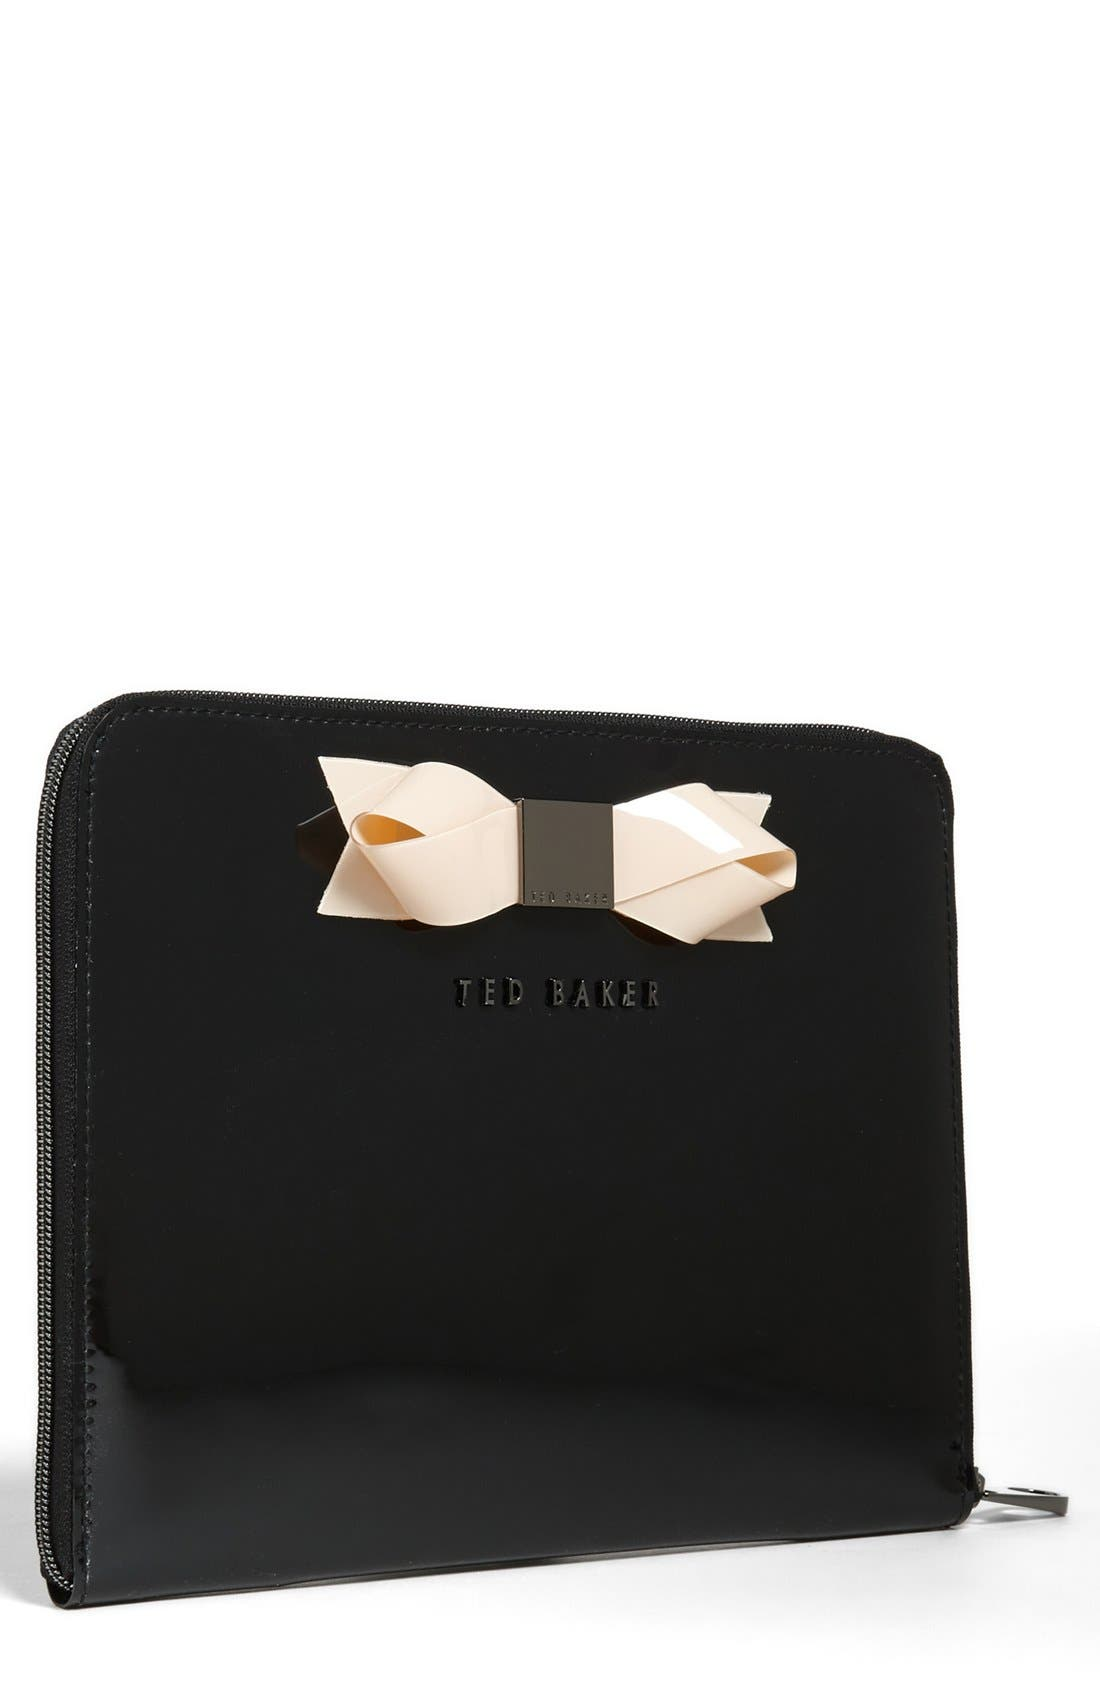 TED BAKER LONDON iPad Case, Main, color, 001